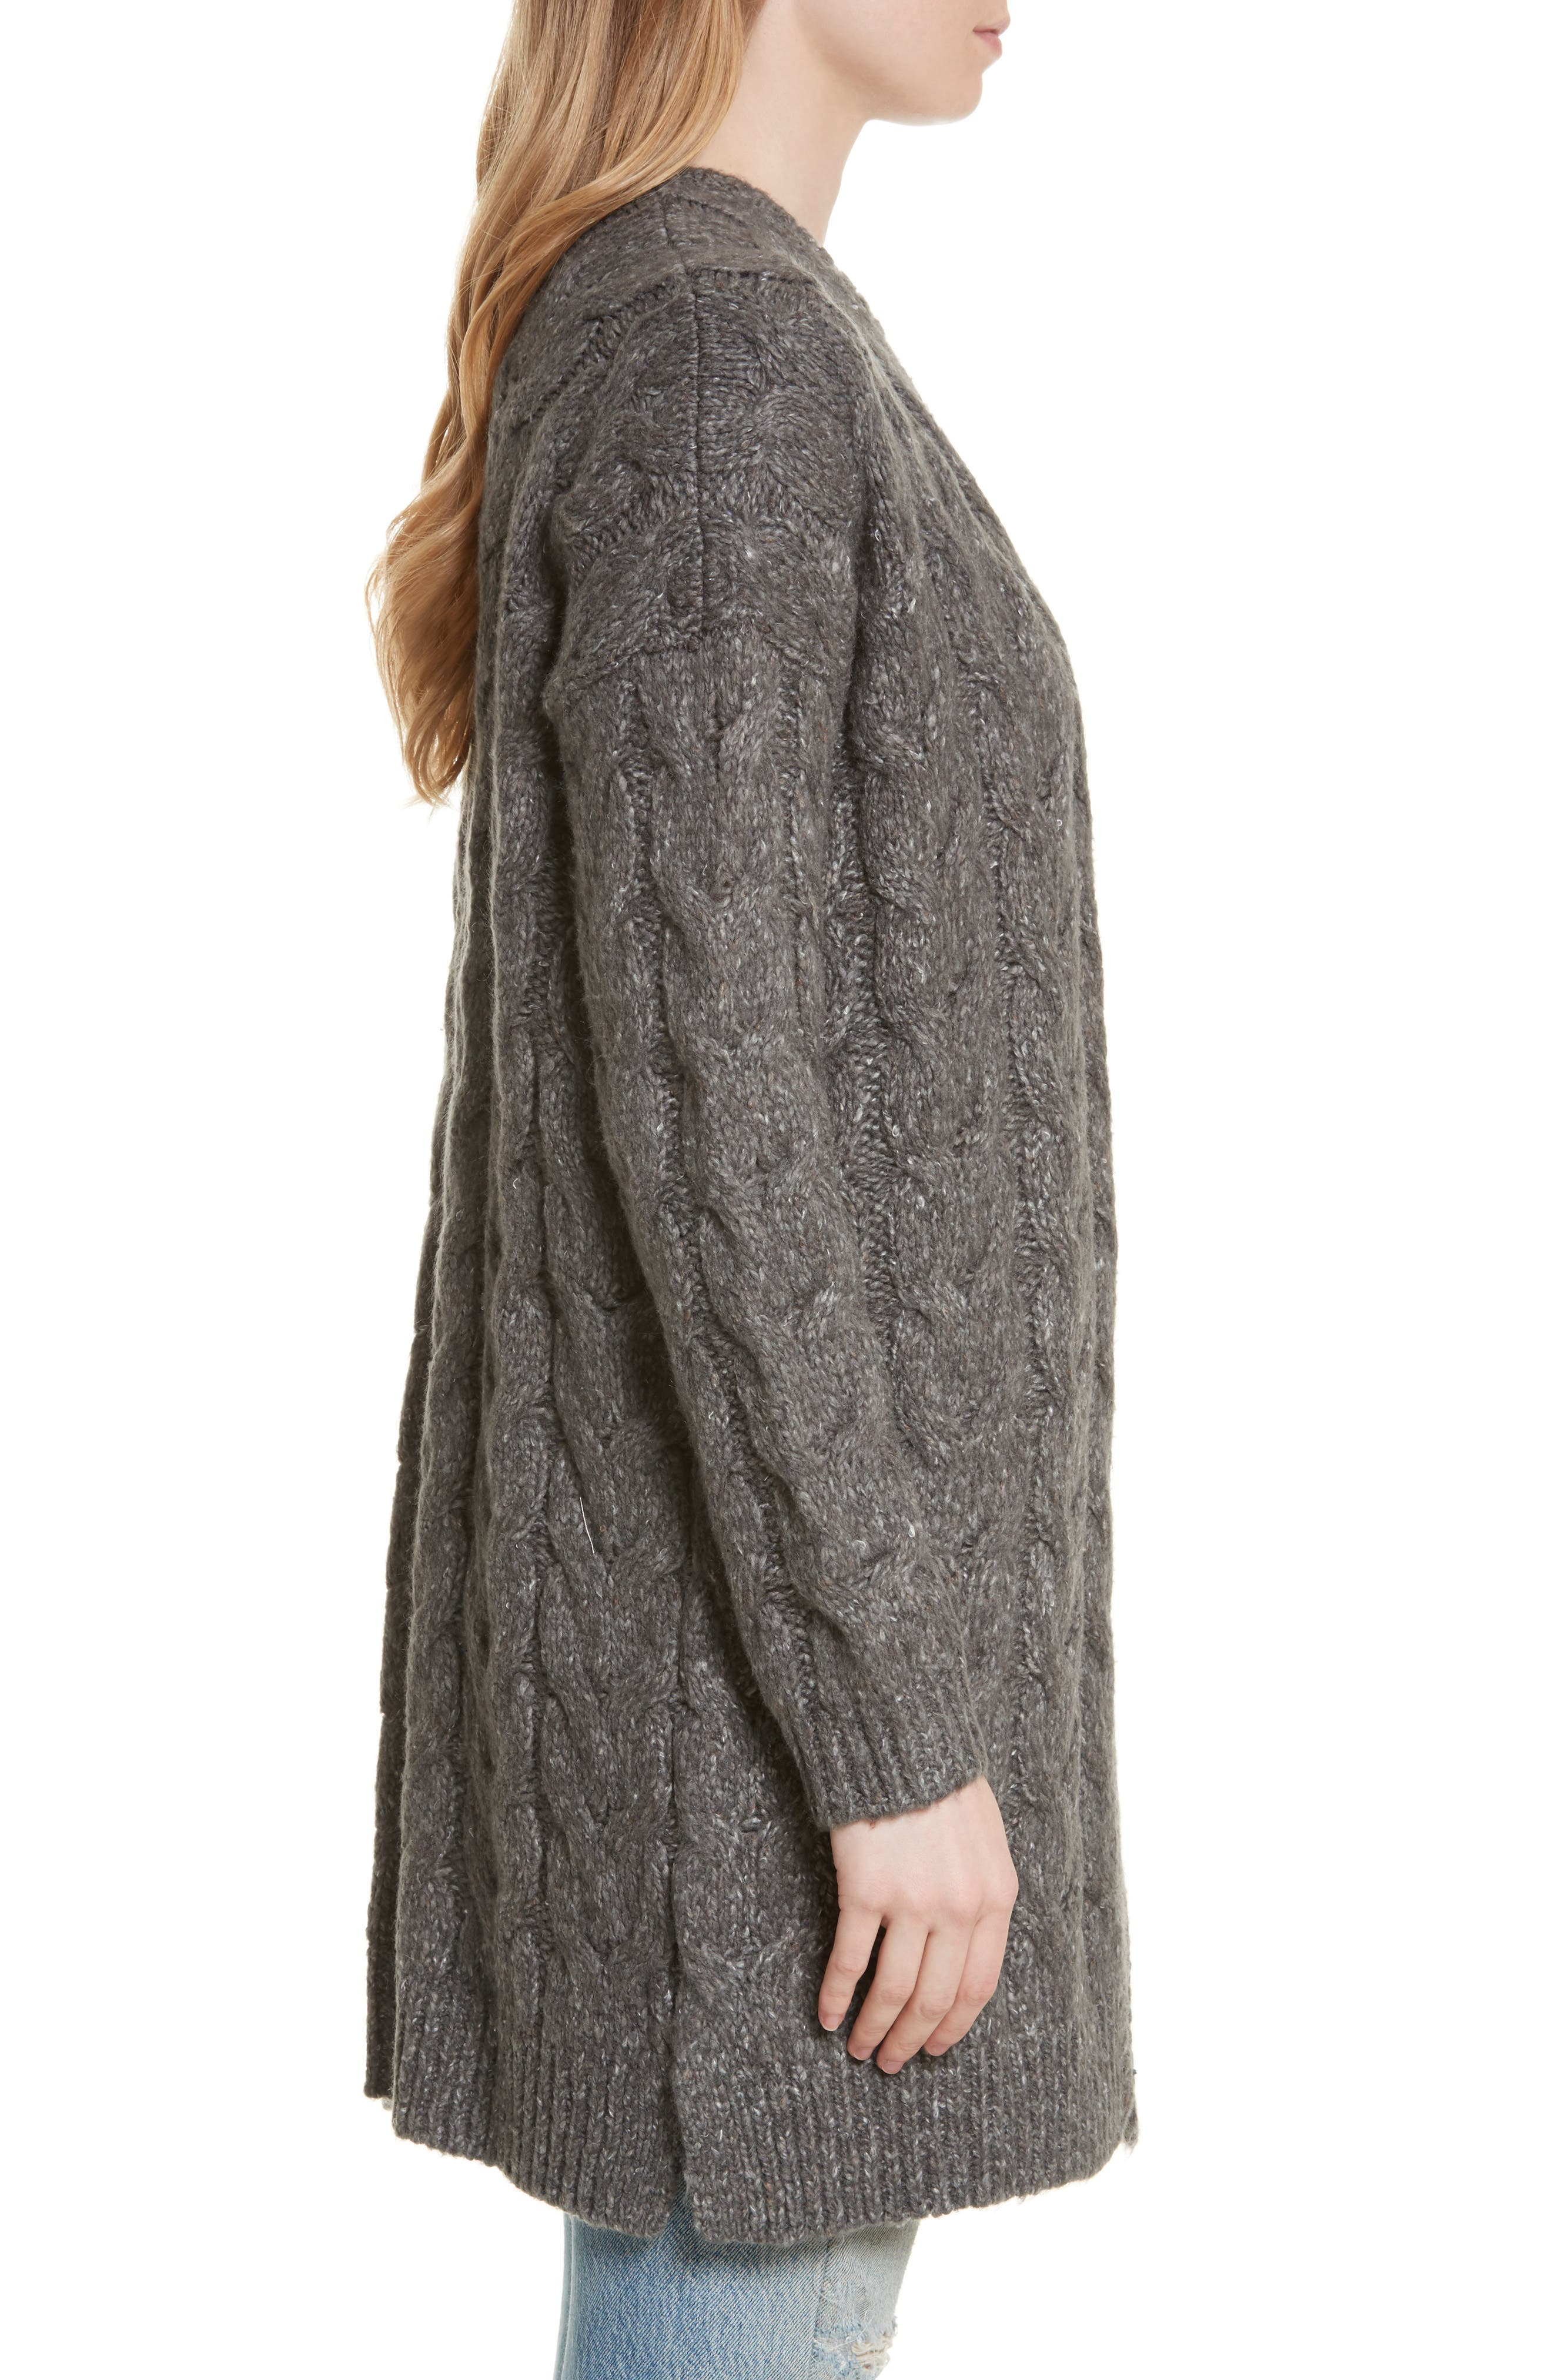 Tienna Cable-Knit Cardigan,                             Alternate thumbnail 3, color,                             Dark Heather Grey